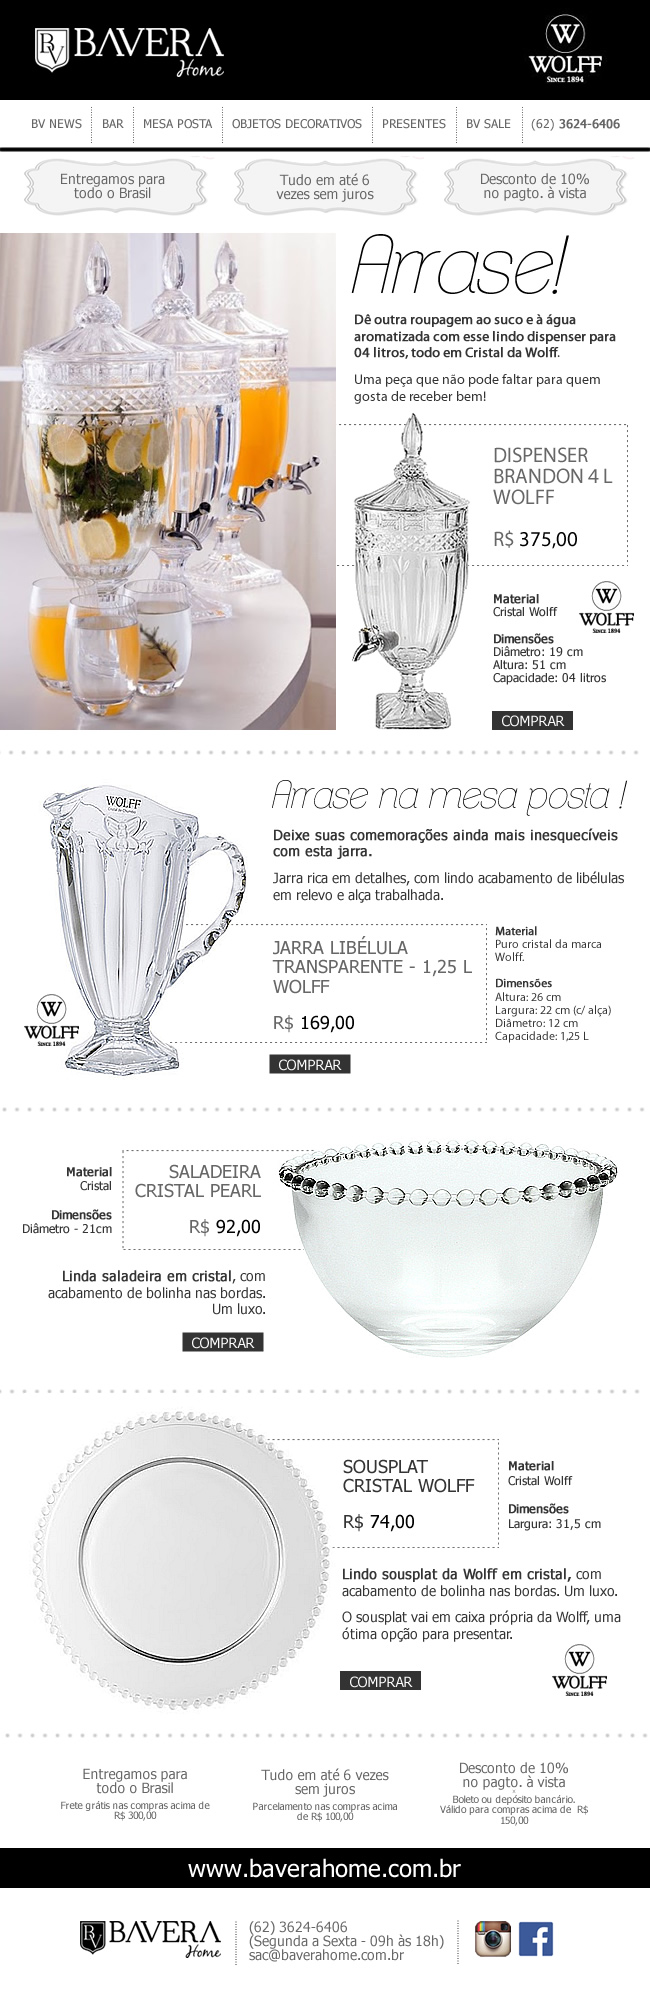 Newsletter para loja virtual Bavera Home